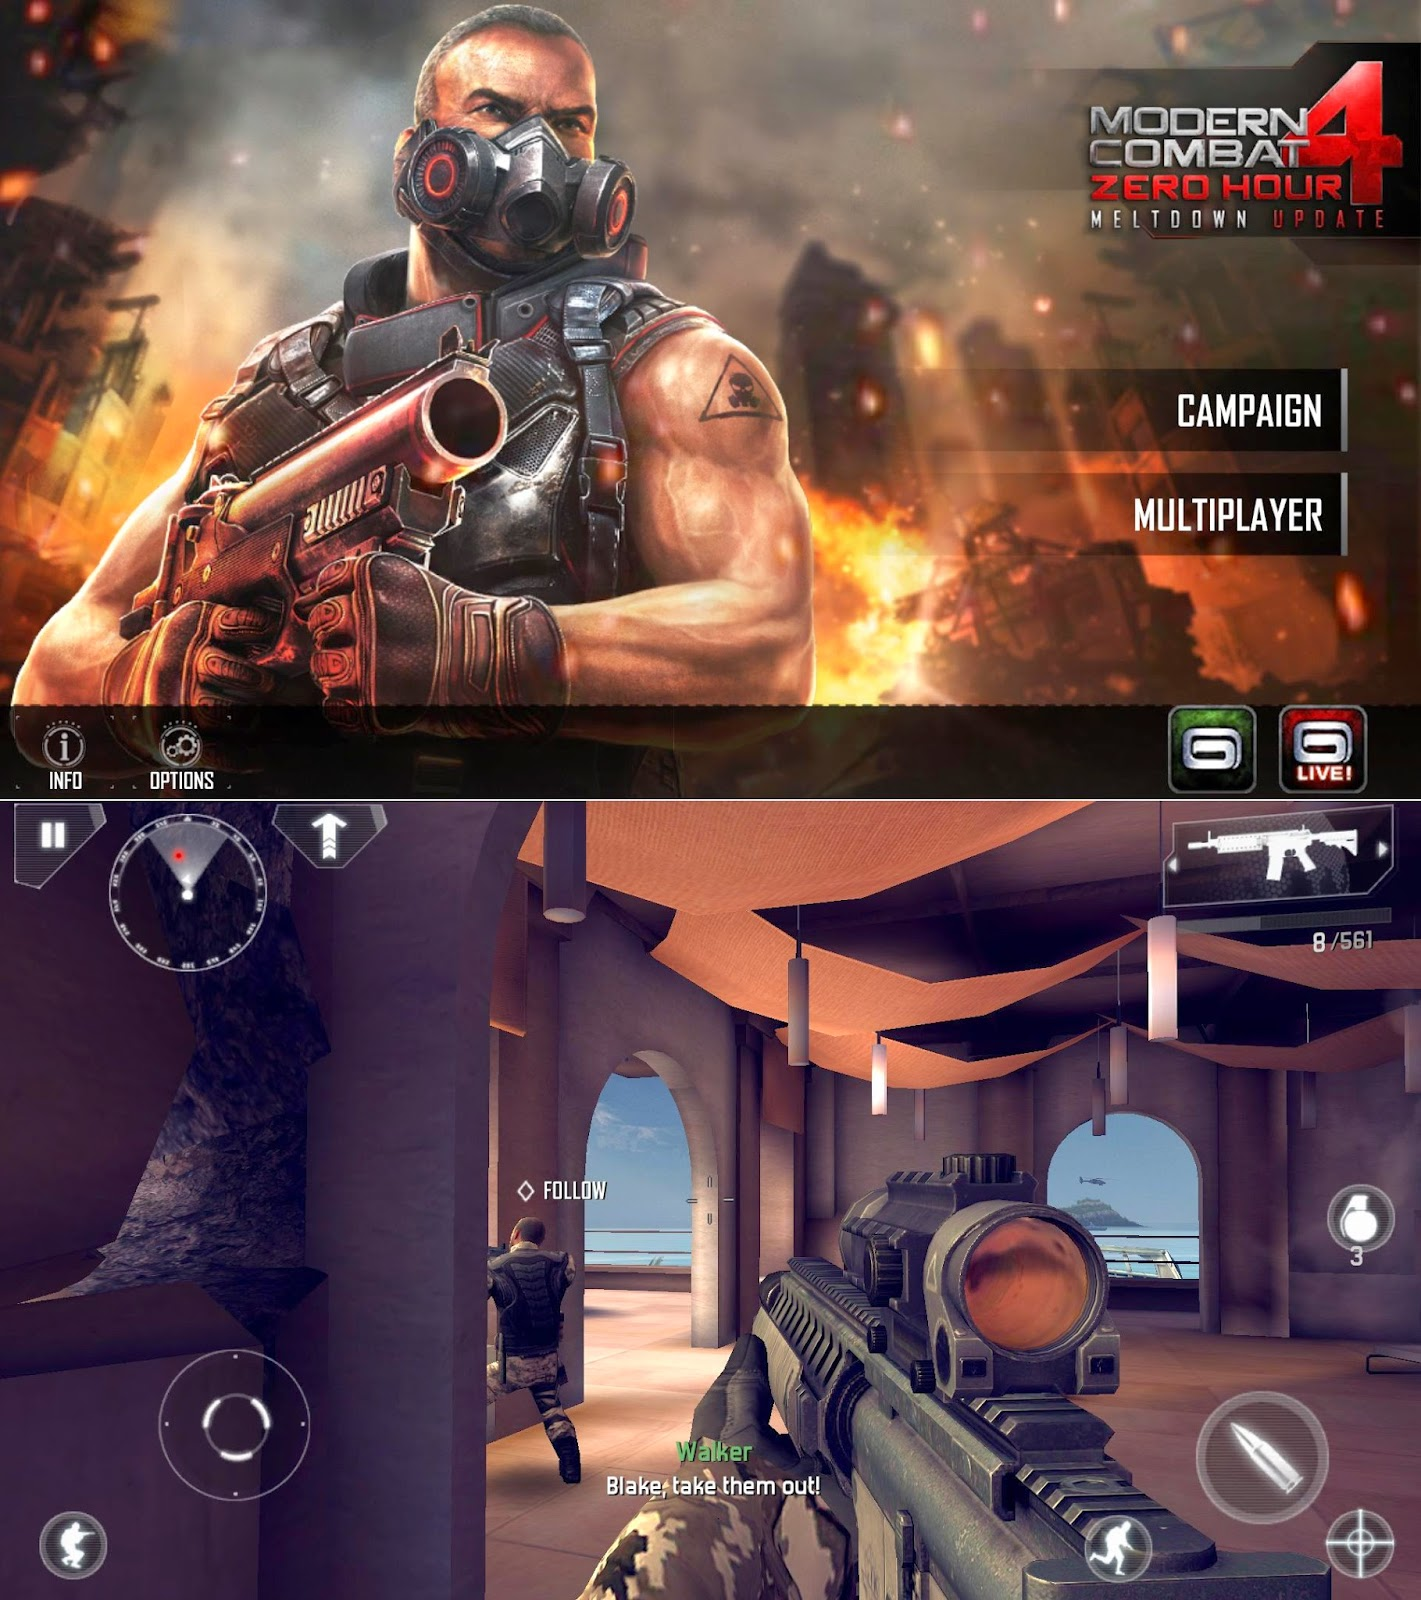 Kata Digital M1 Review, Colossal Inside and Out Modern Combat 4